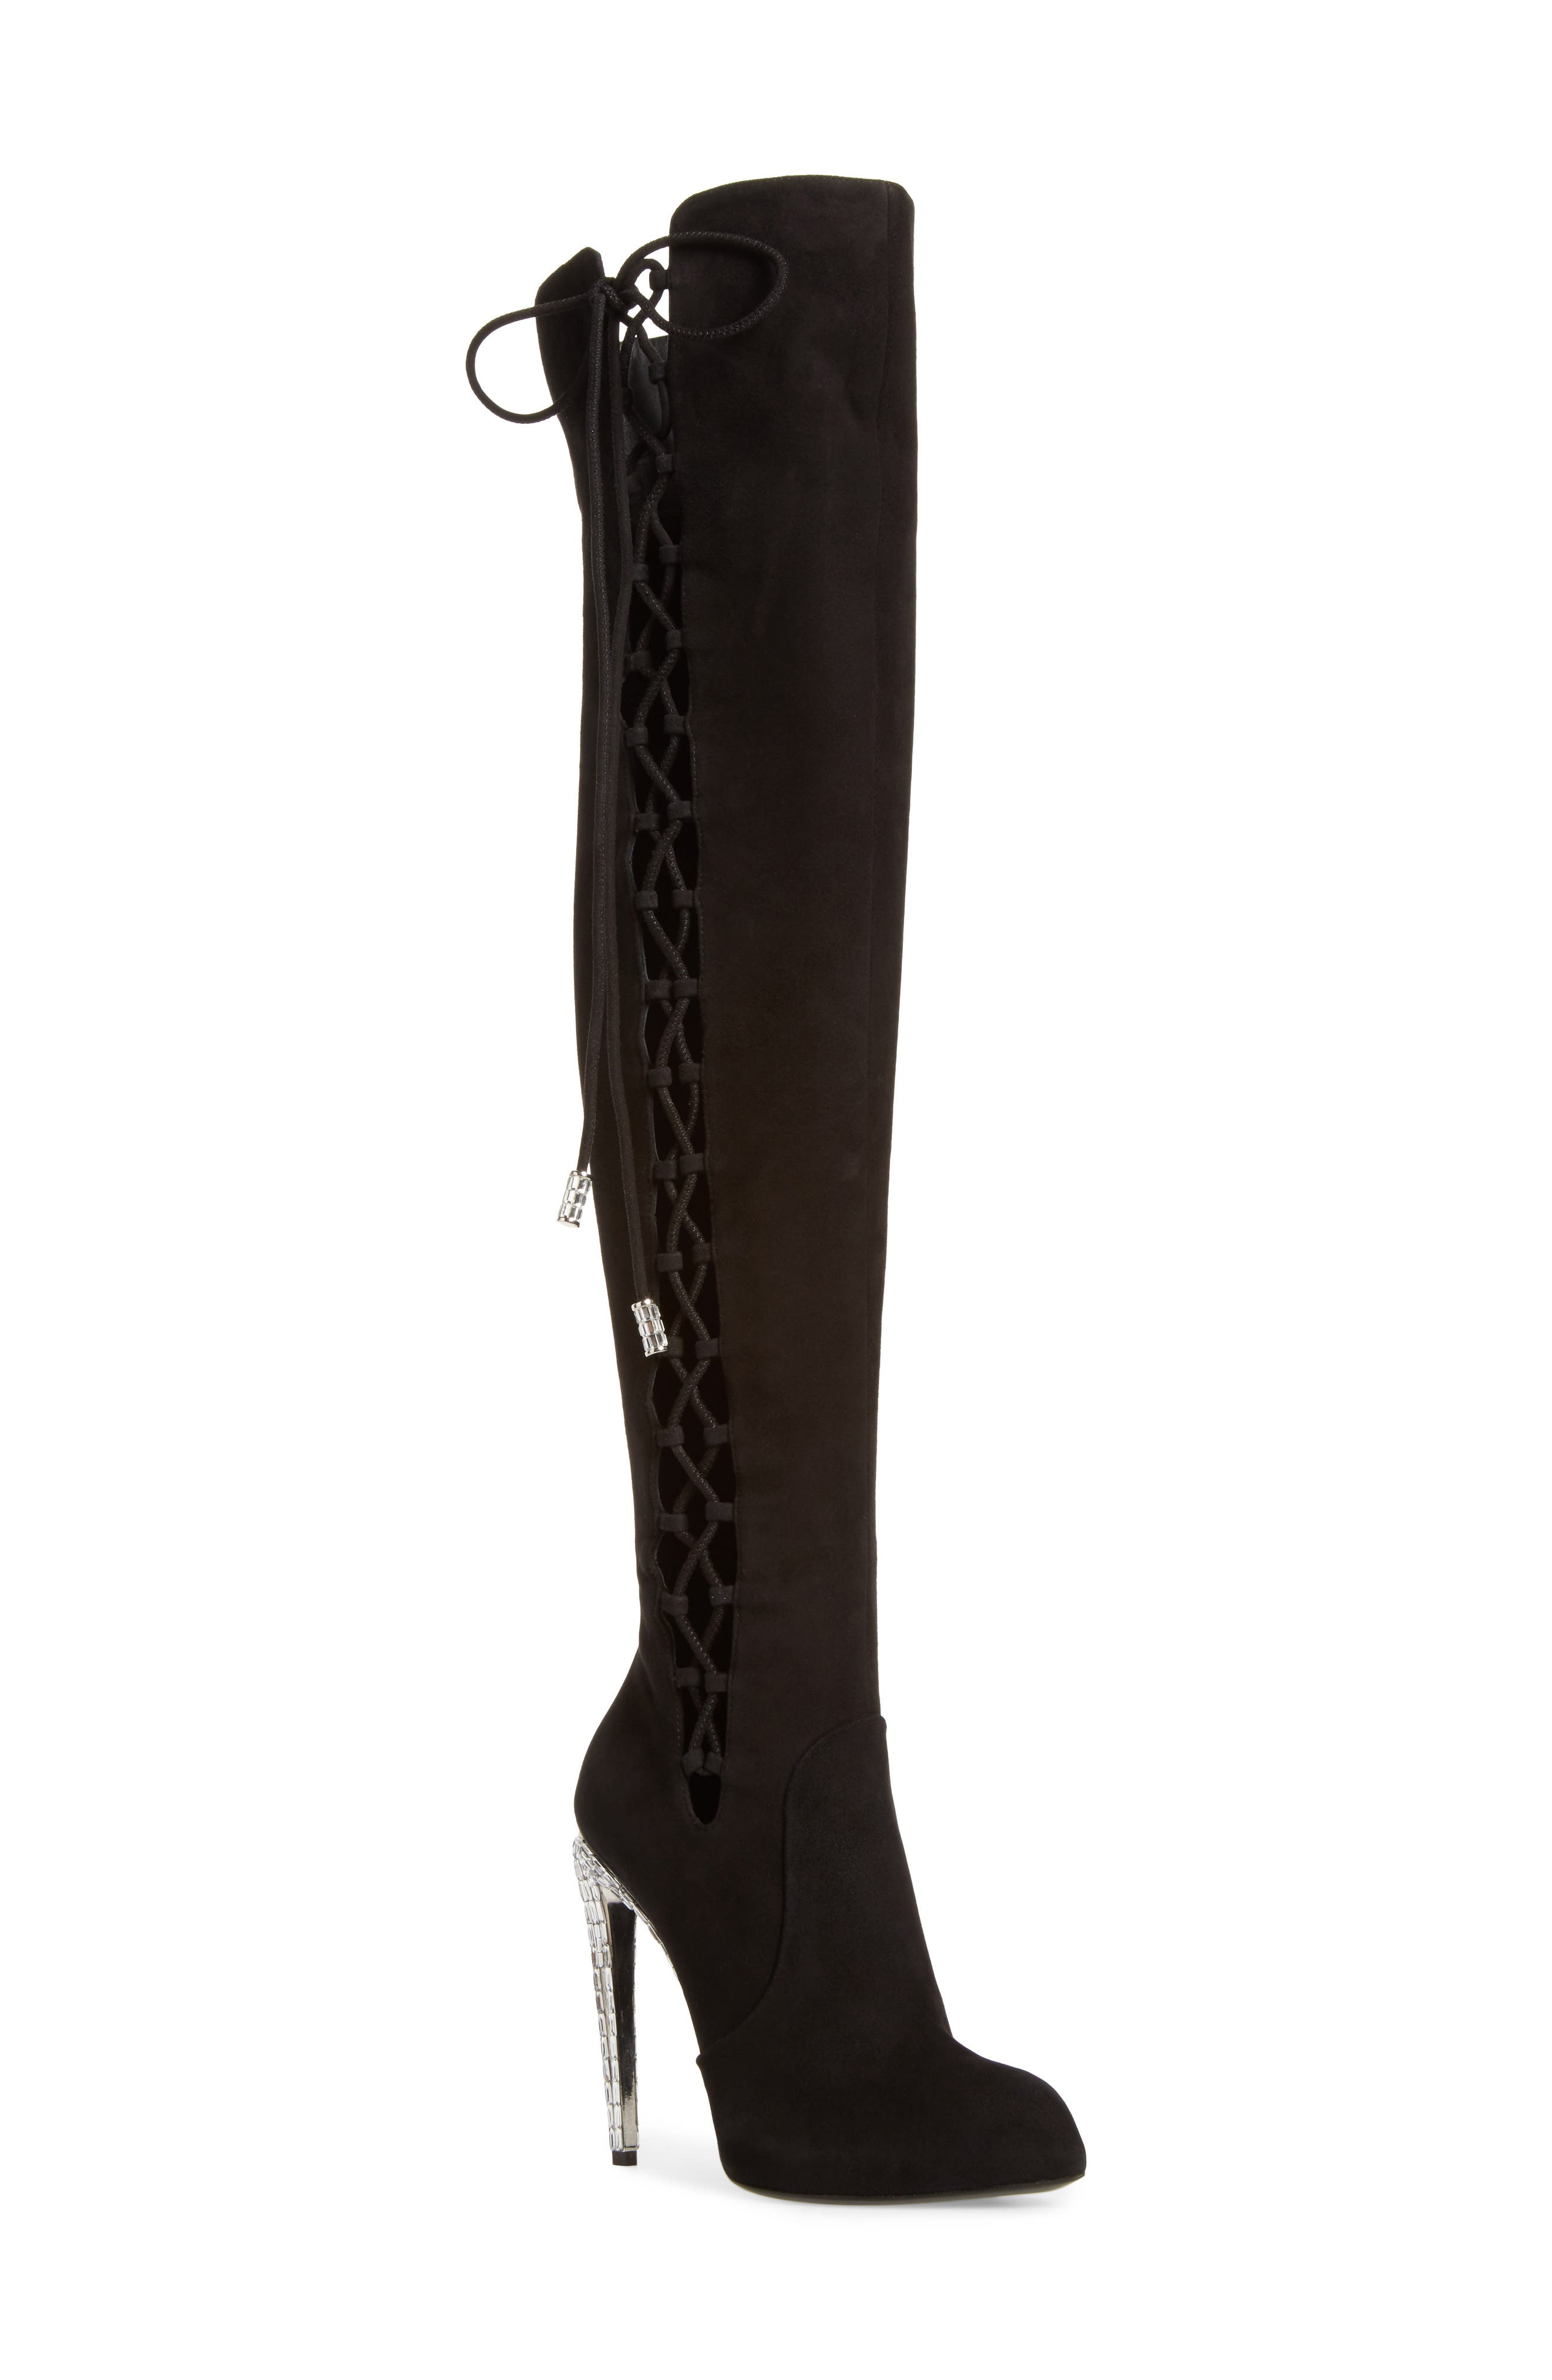 GIUSEPPE ZANOTTI Lace-Up Over the Knee Boot